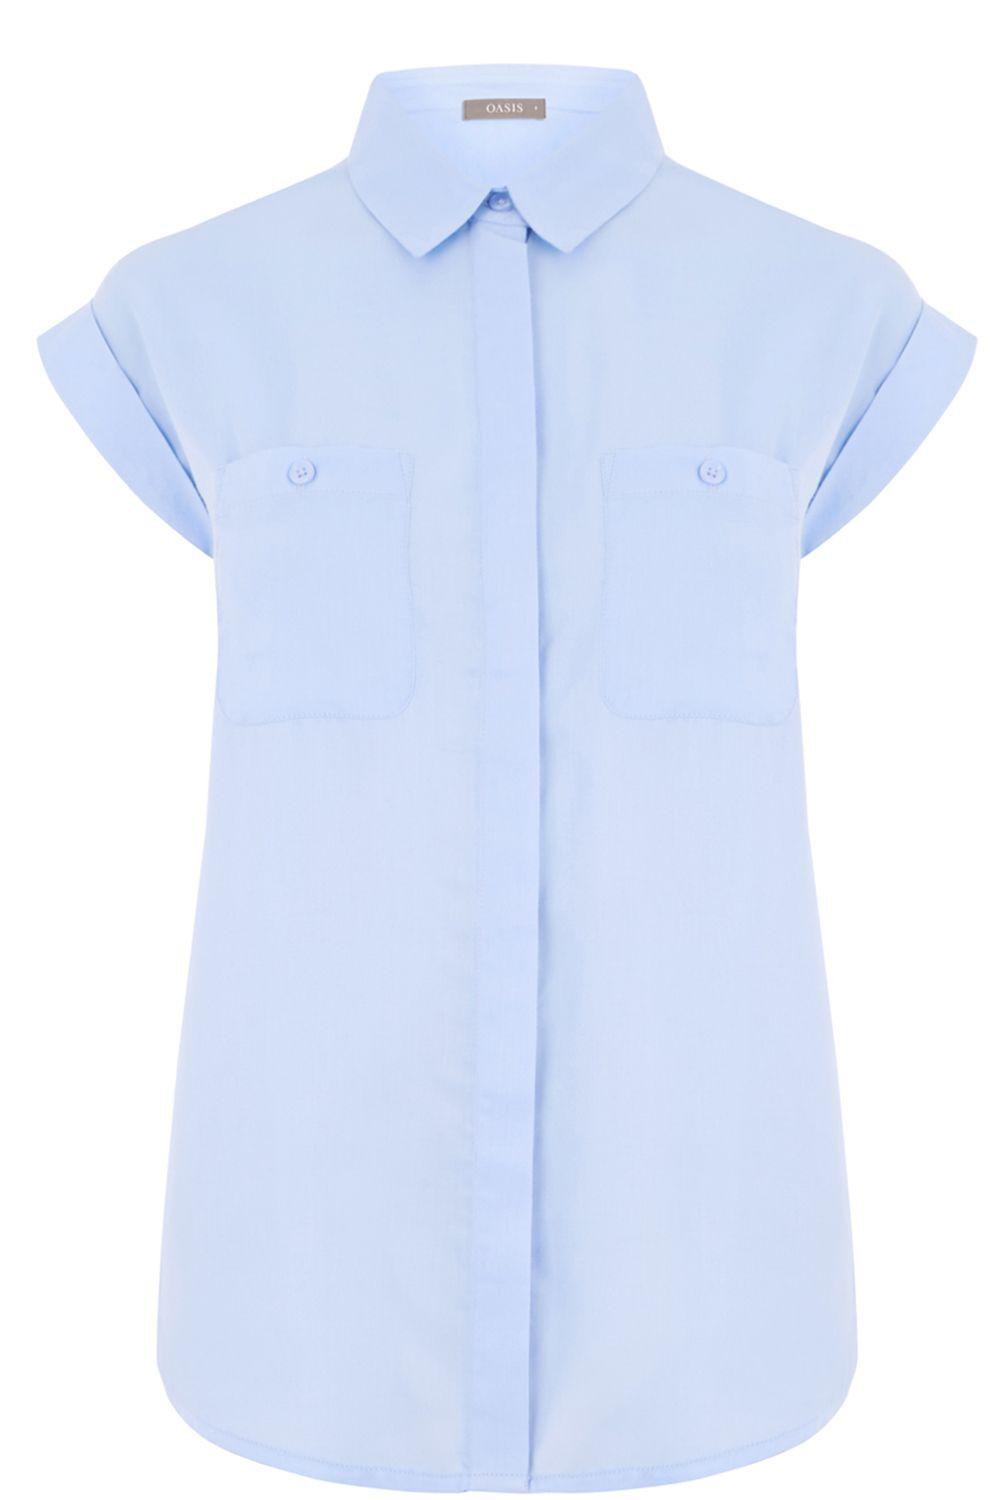 Oasis Short Sleeve Viscose Shirt, Light Blue